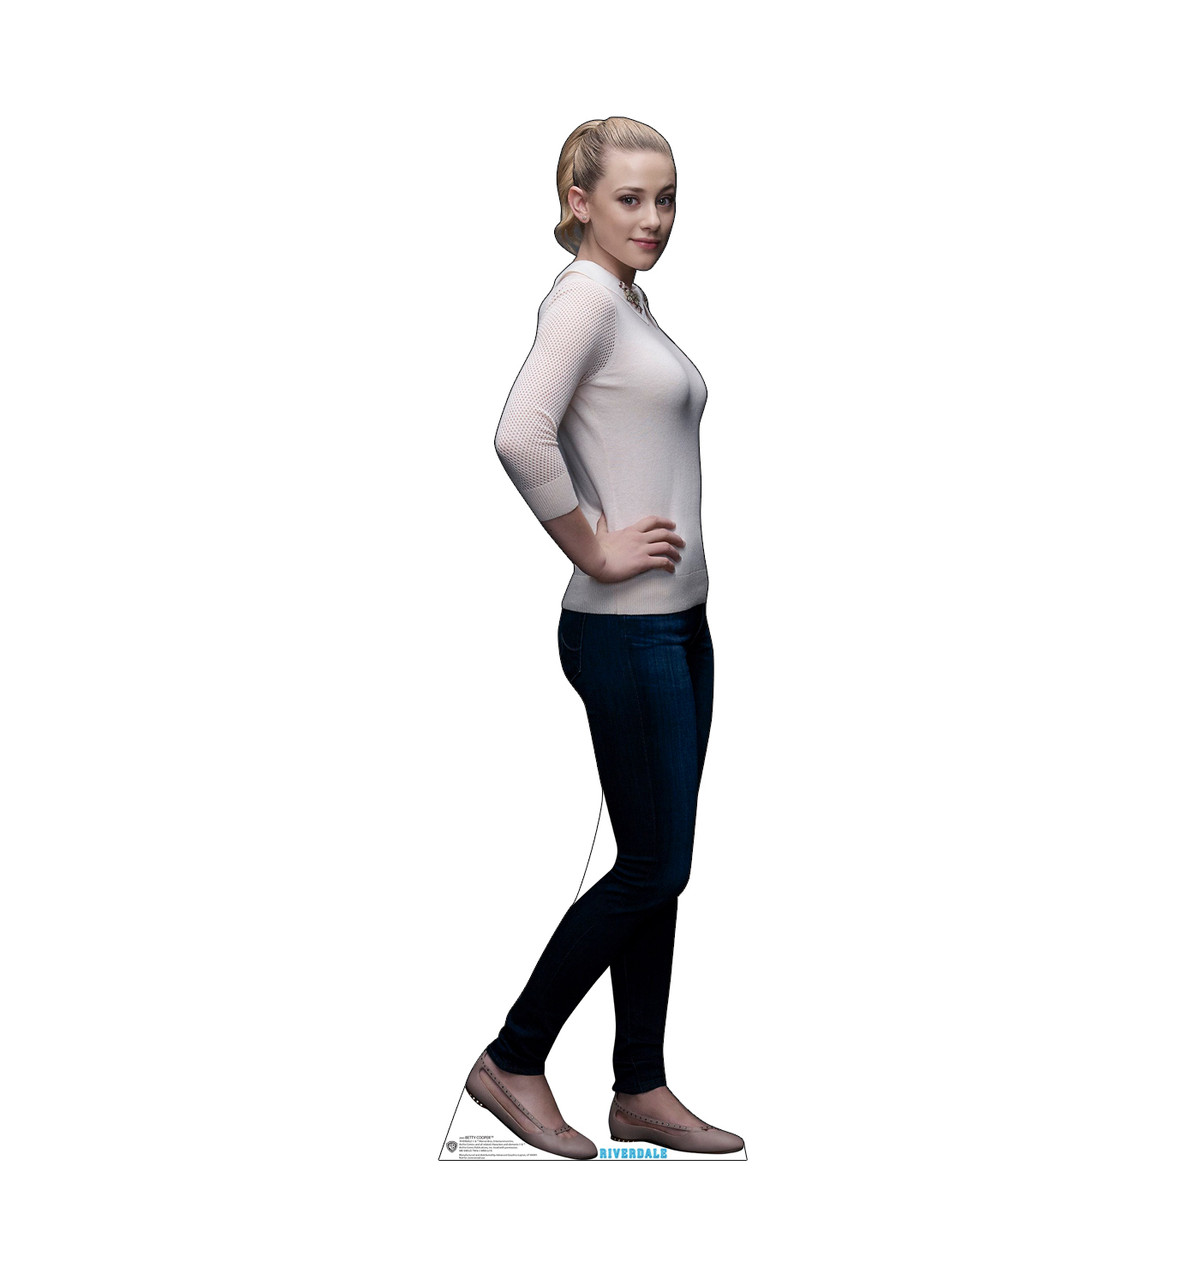 Life-size cardboard standee of Betty Cooper from the TV Series Riverdale.